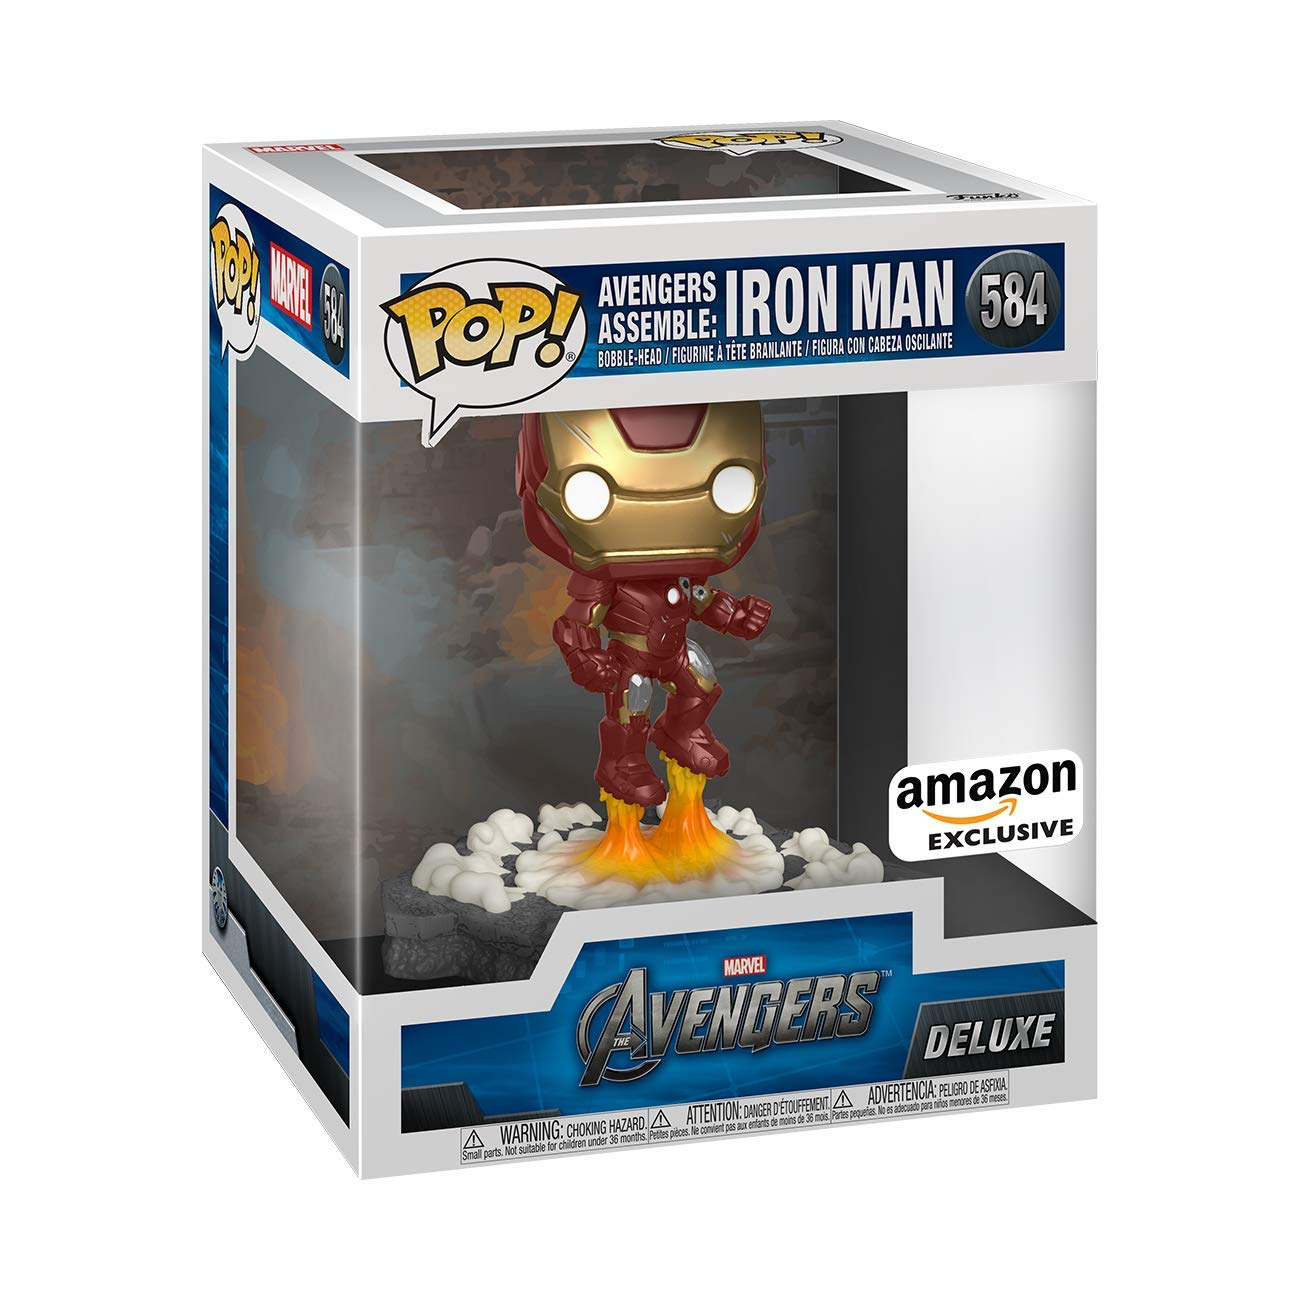 Reunite the Avengers with the New Deluxe Funko from Amazon